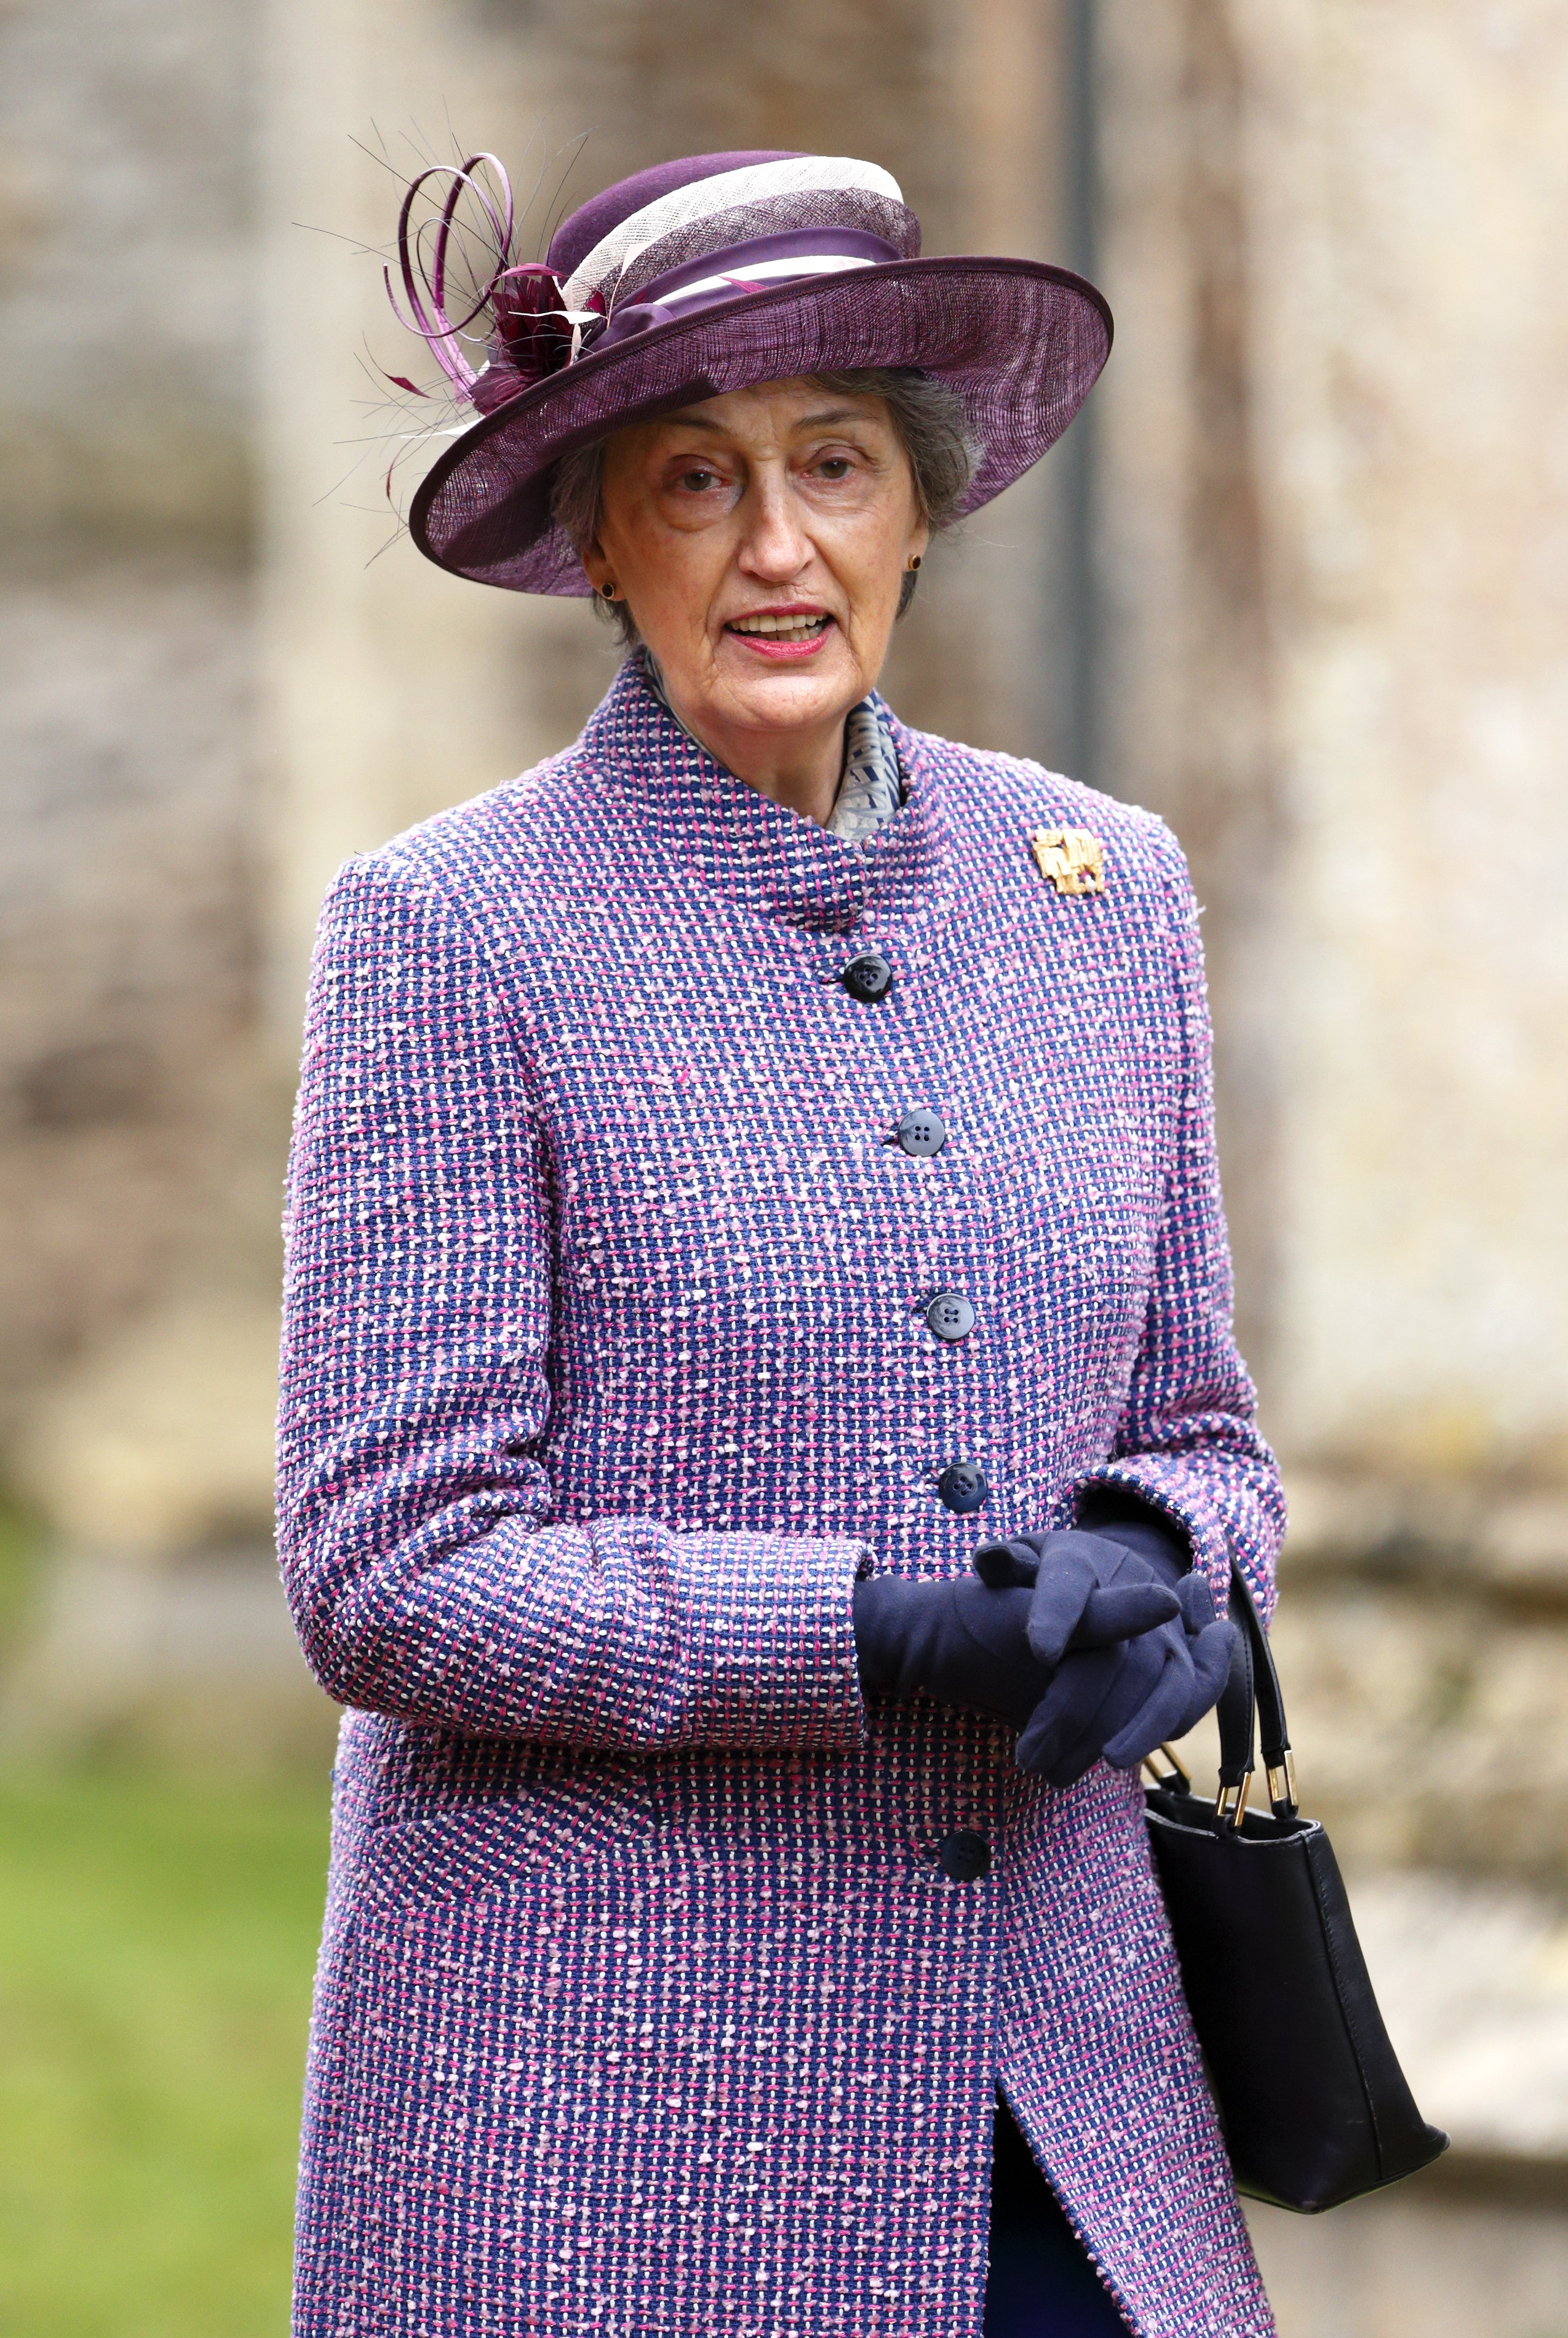 Lady Susan Hussey accompanies Queen Elizabeth II to Sunday service on January 19, 2014 in Norwich, England | Photo: Getty Images